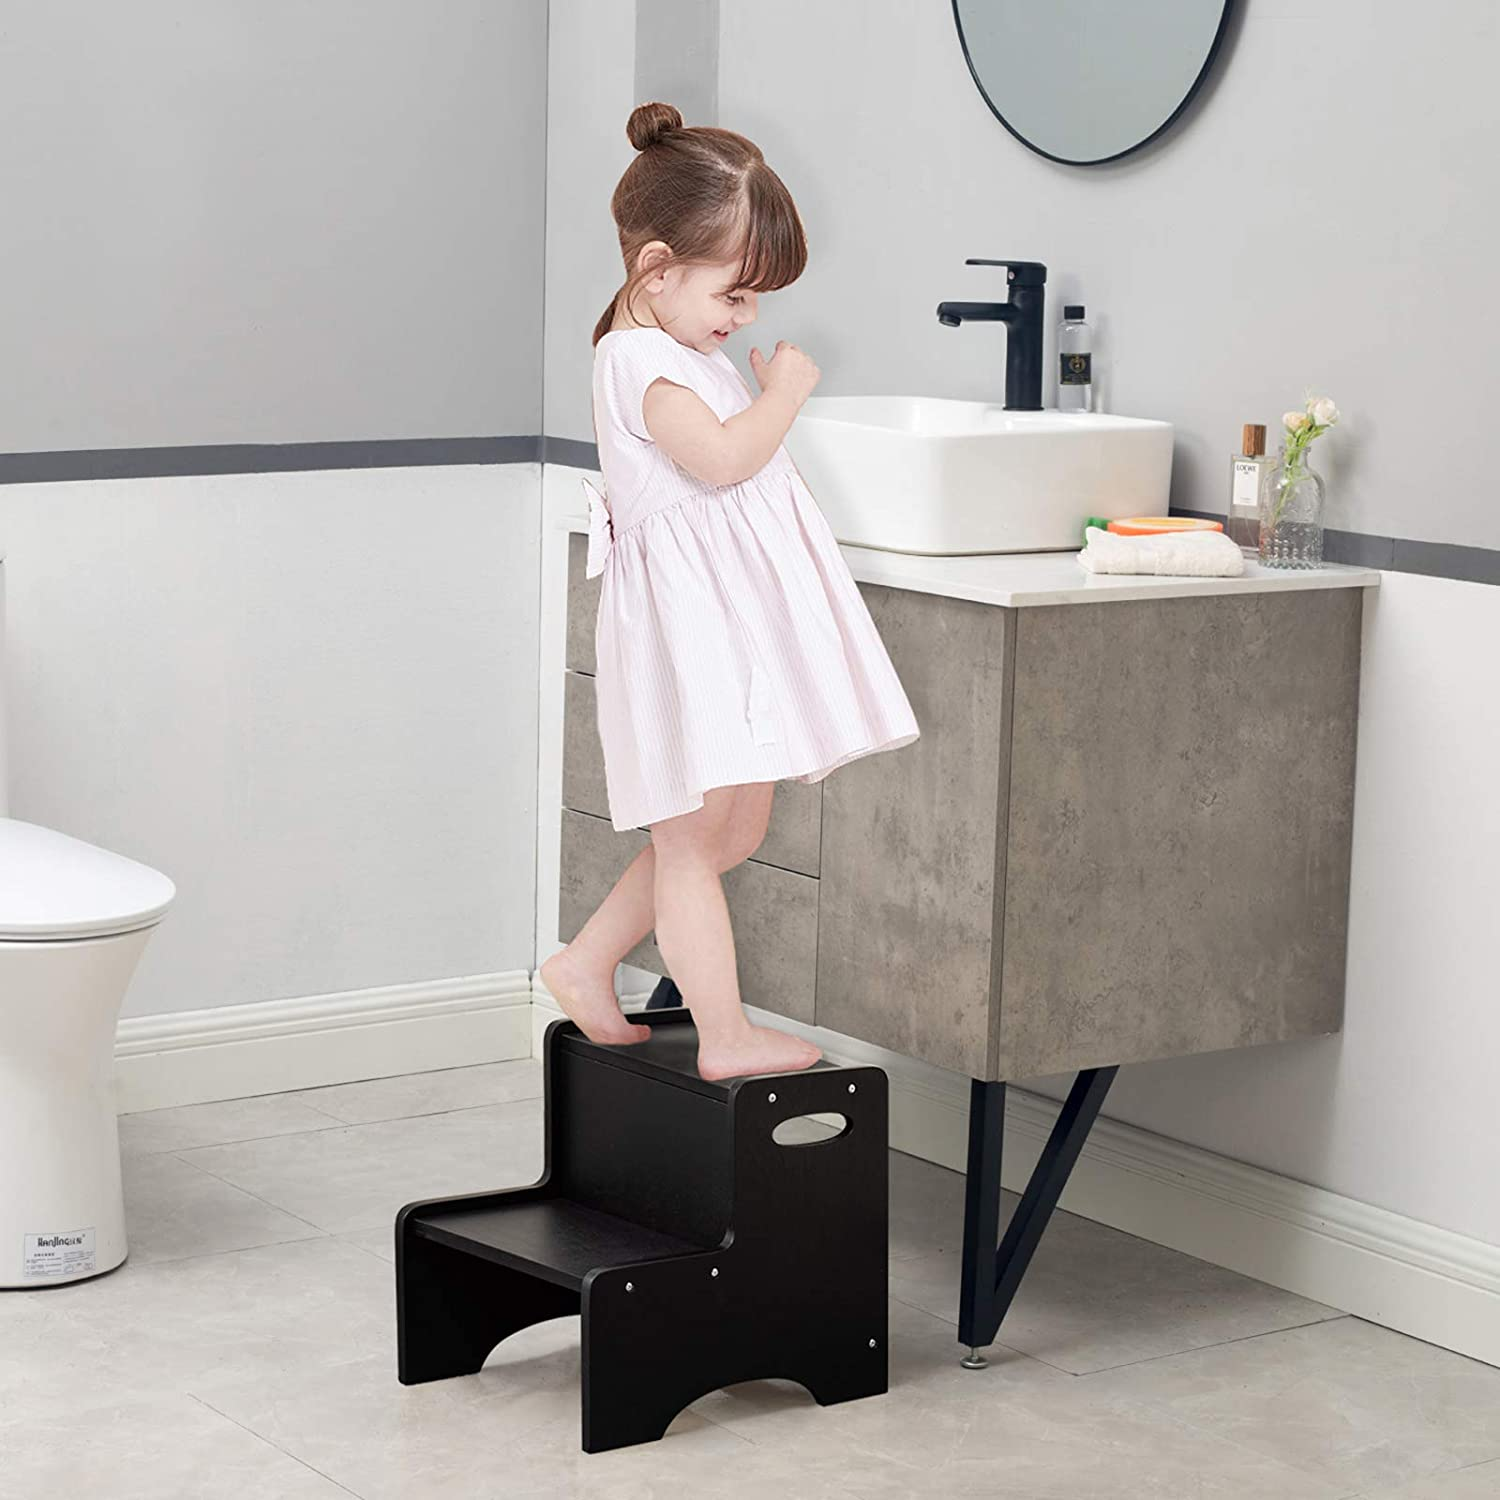 WOOD CITY Step Stool for Kids, Wooden Toddler Step Stool with Safety Non-Slip Mats and Handles, 2 Step Stool for Kitchen, Bathroom Sink & Potty Training - Black : Baby